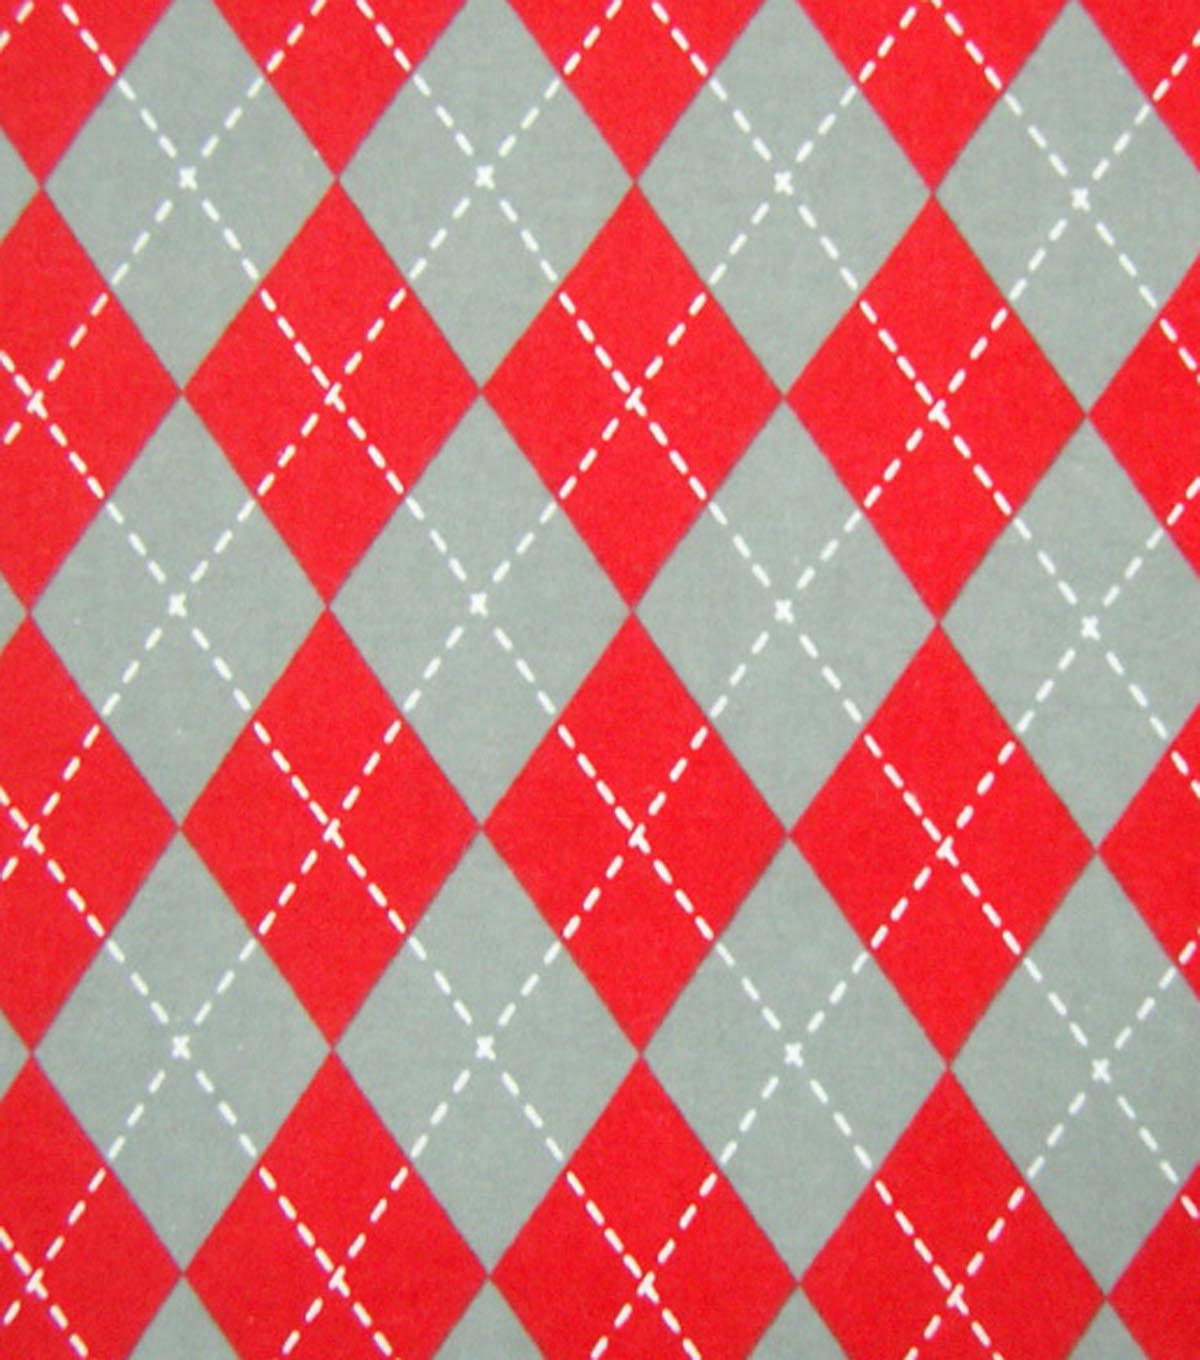 Snuggle Flannel Fabric Argyle Red Gray | JOANN